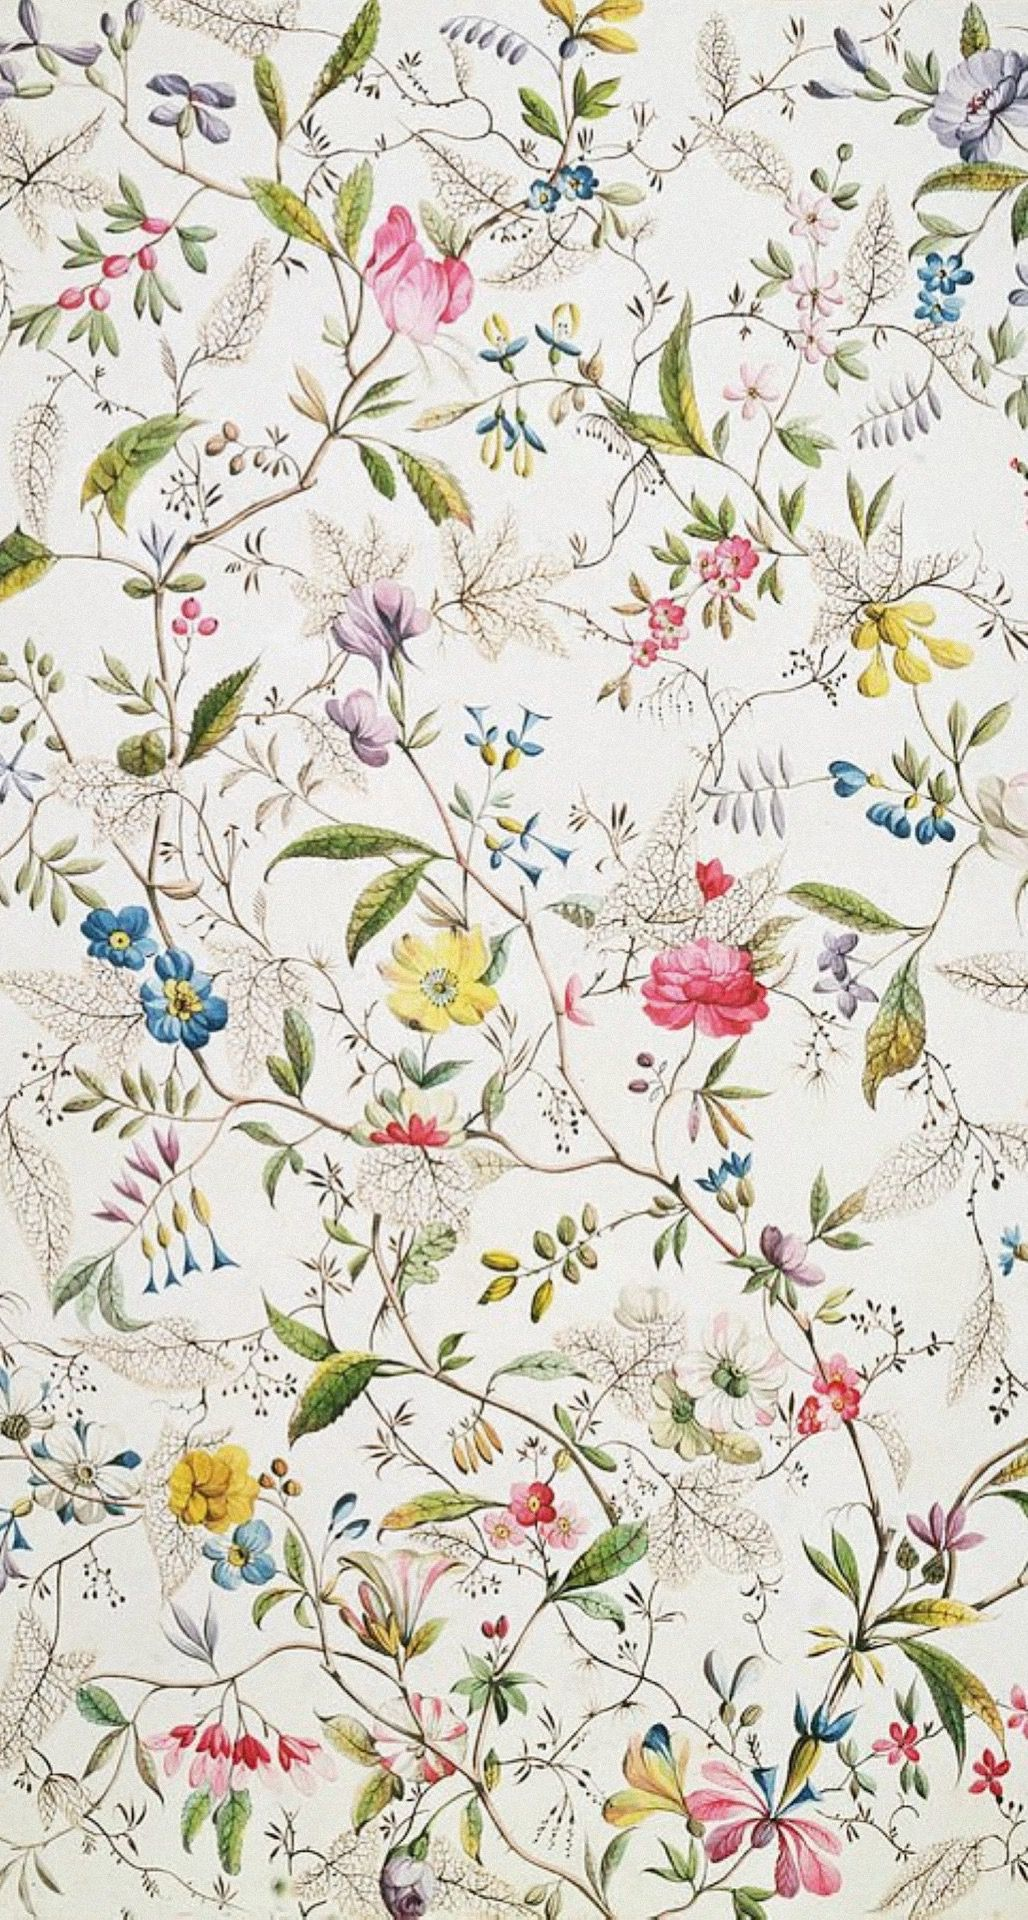 Flowers Abc Concepts Pinterest Flowers Wallpaper And Patterns